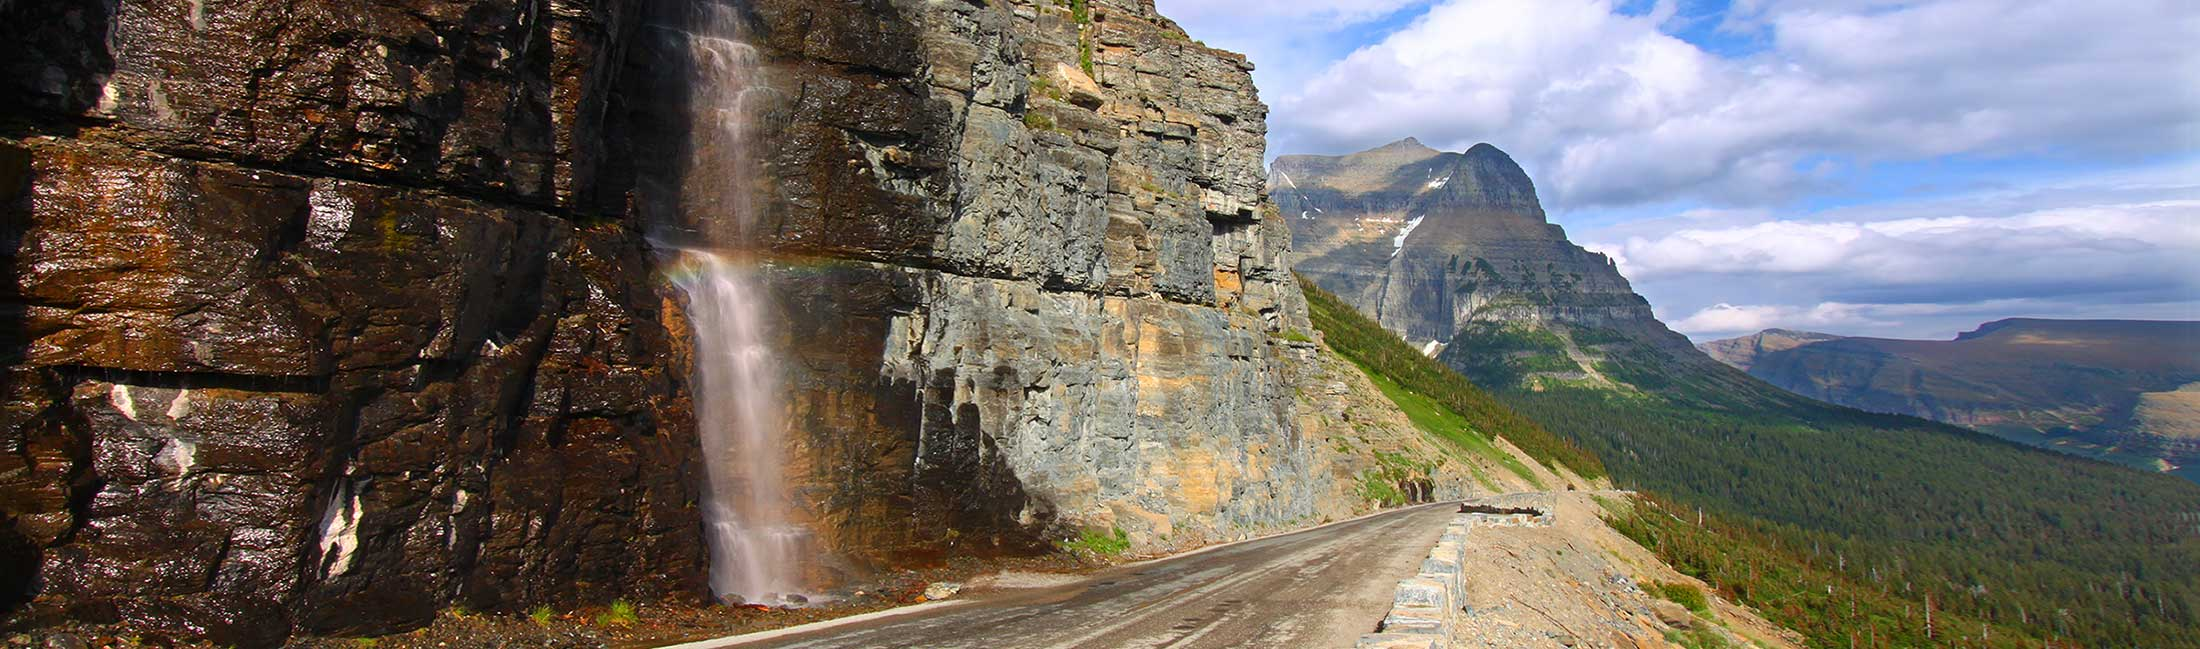 Scenic views on motorcycle can be found in Western Montana's Glacier National Park.